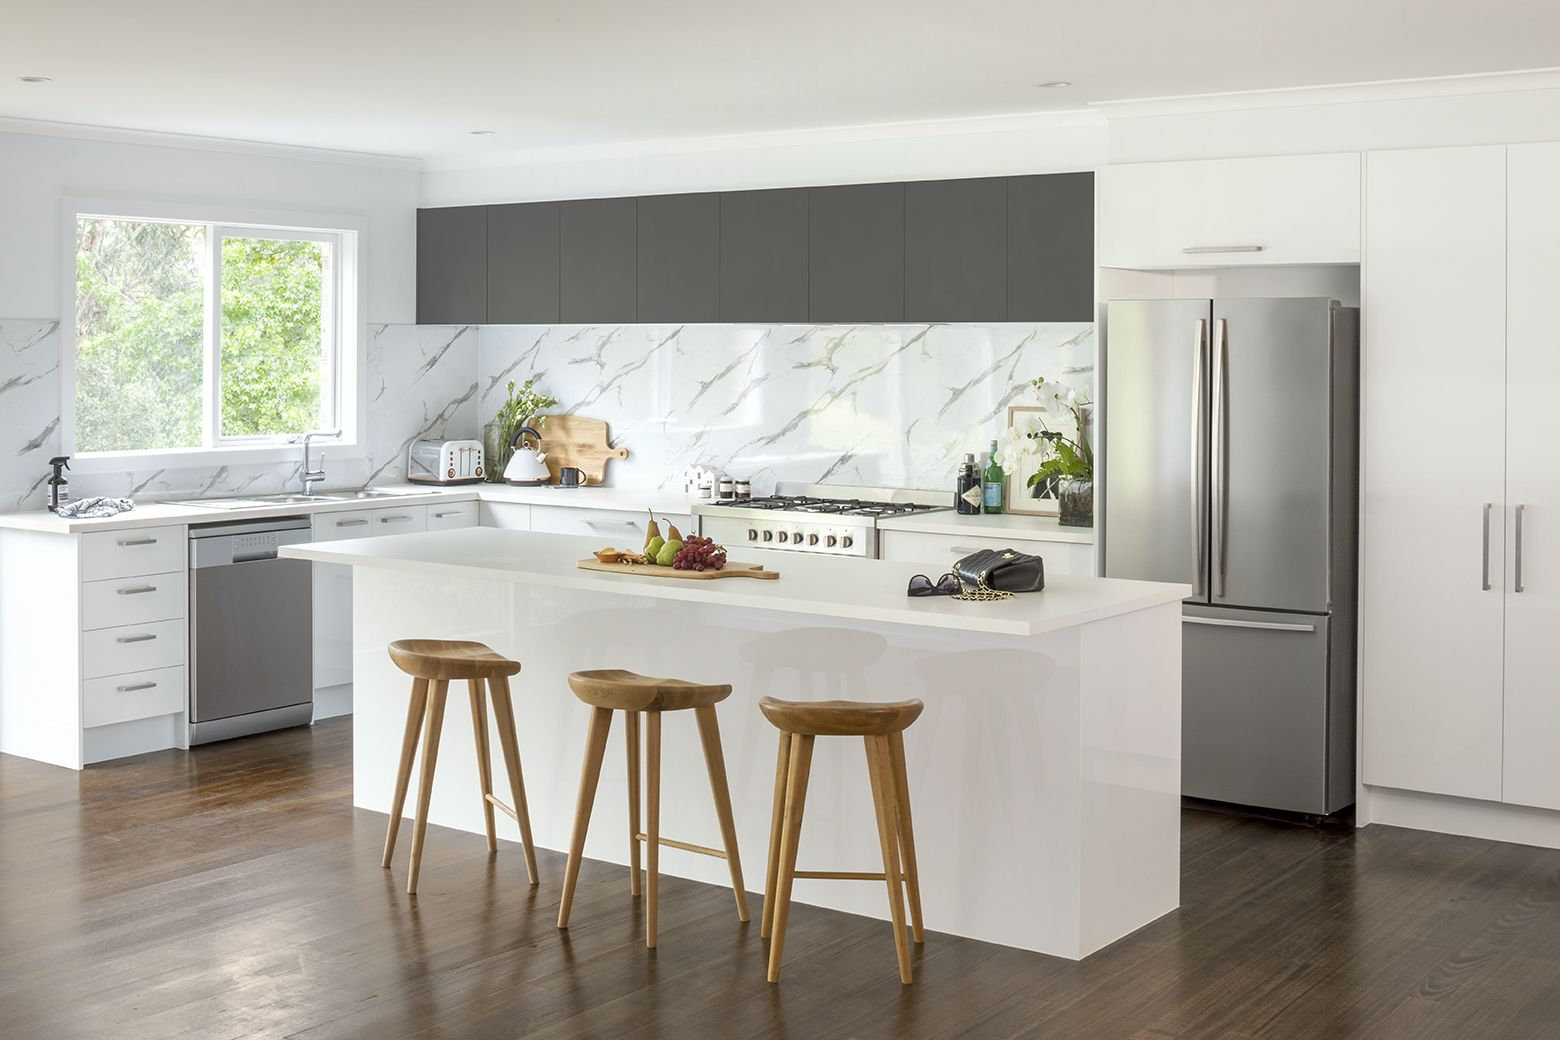 the perfect entertainer kitchen inspiration and ideas kaboodle kitchen similar on kaboodle kitchen design id=82840